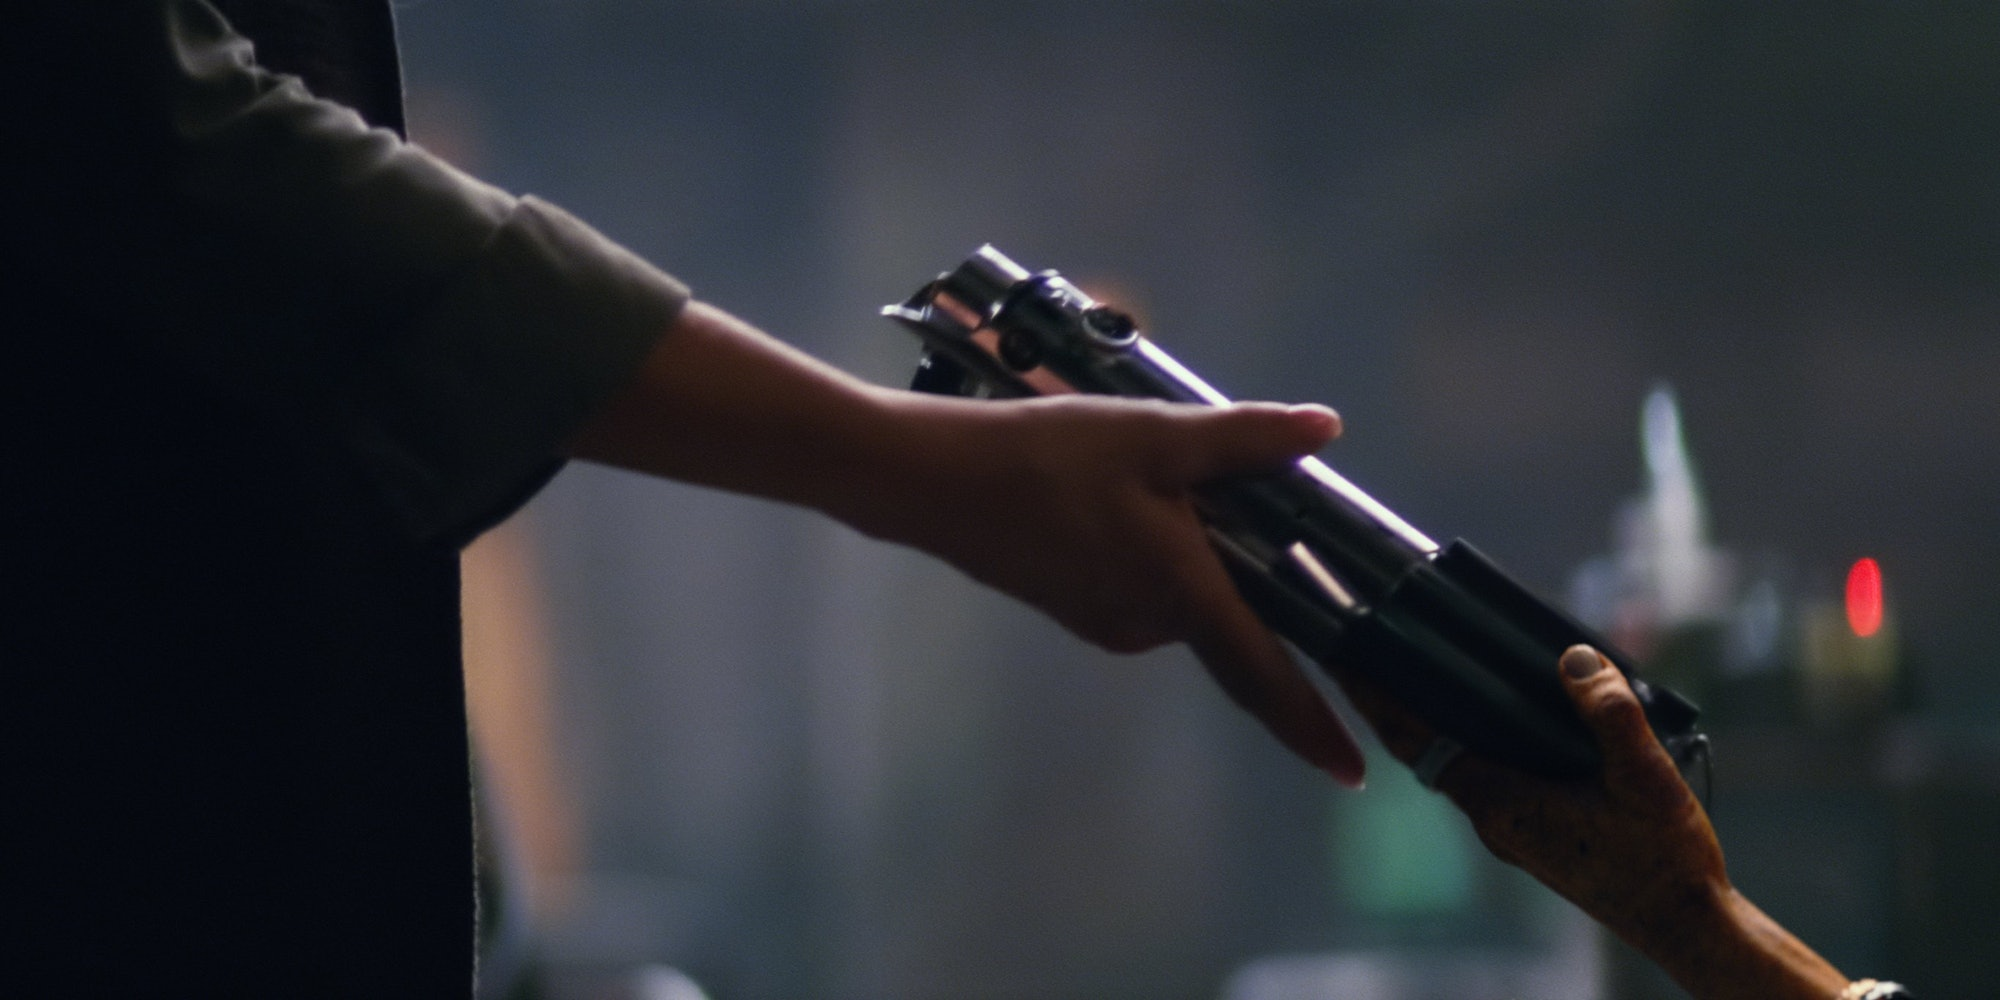 Maz hands Leia the family lightsaber in a deleted scene from 'The Force Awakens'